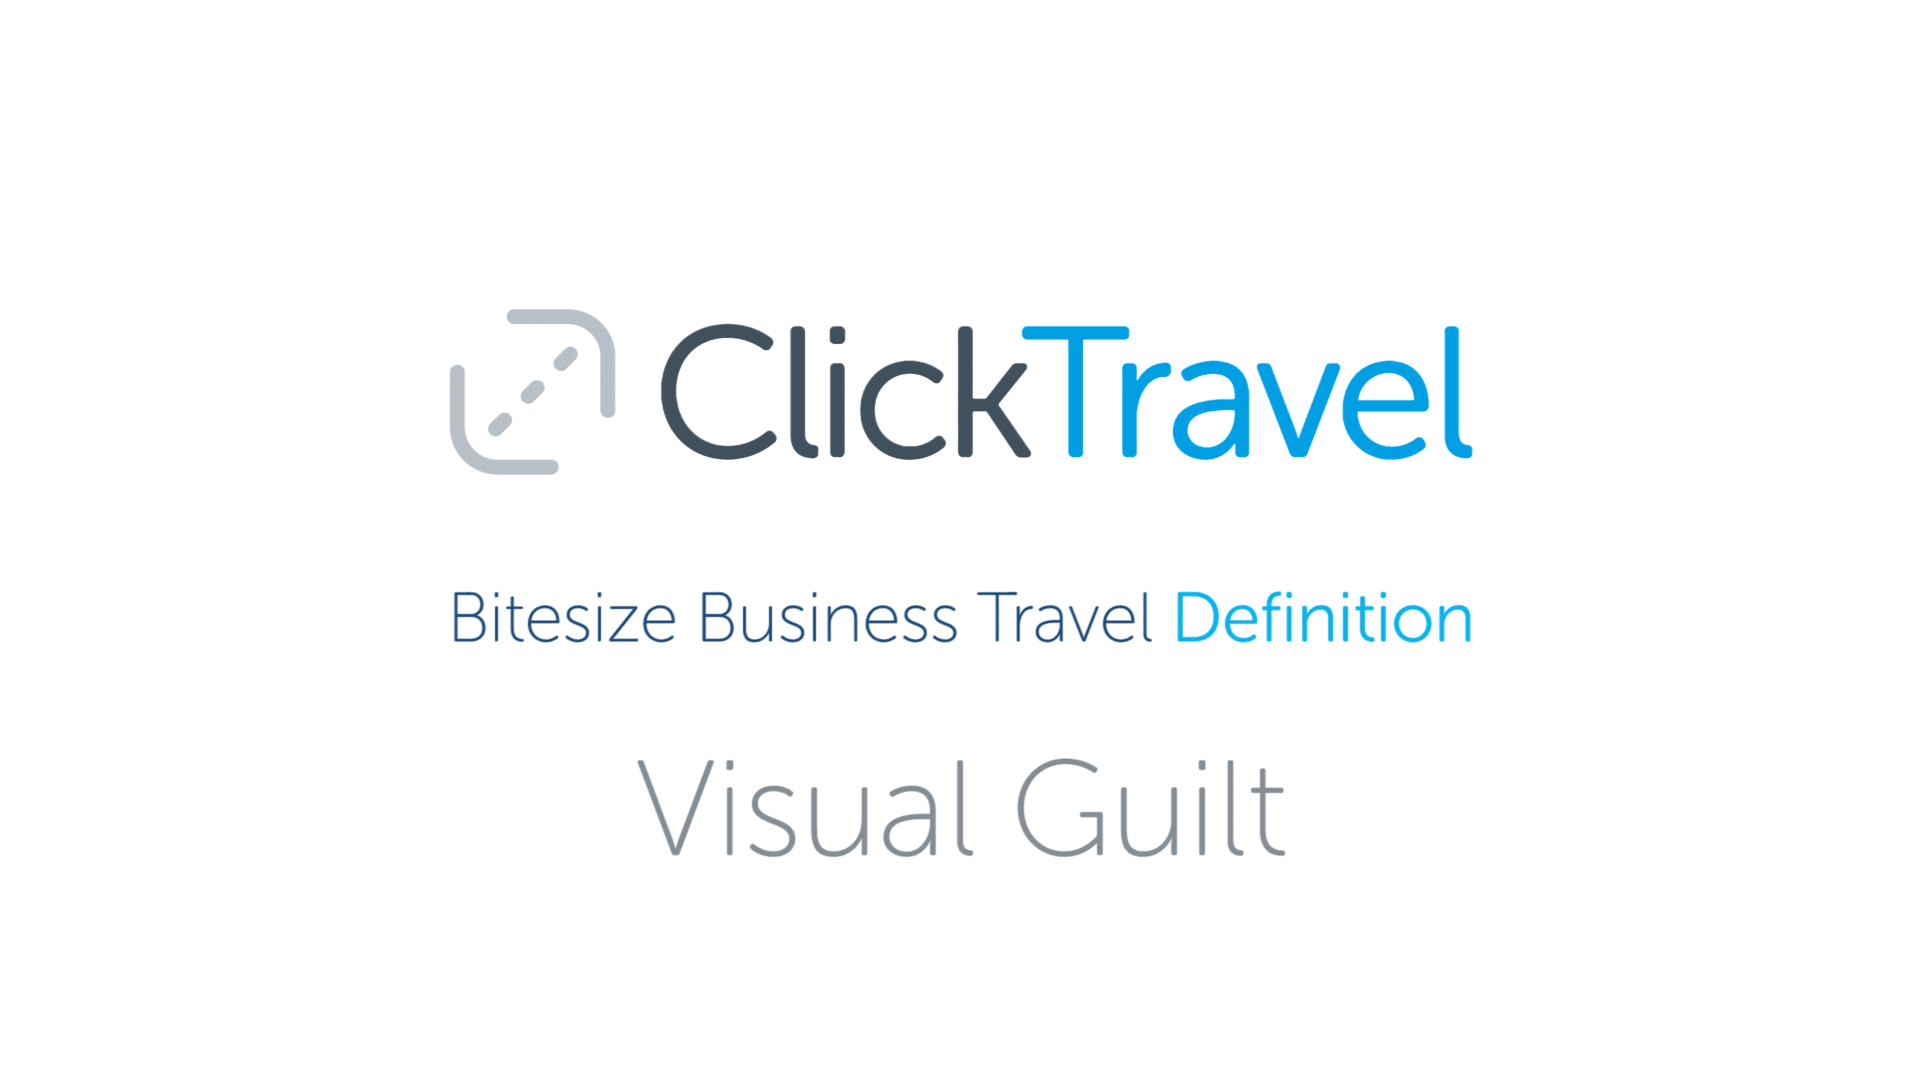 [VIDEO] Bitesize Business Travel Definition: Visual guilt